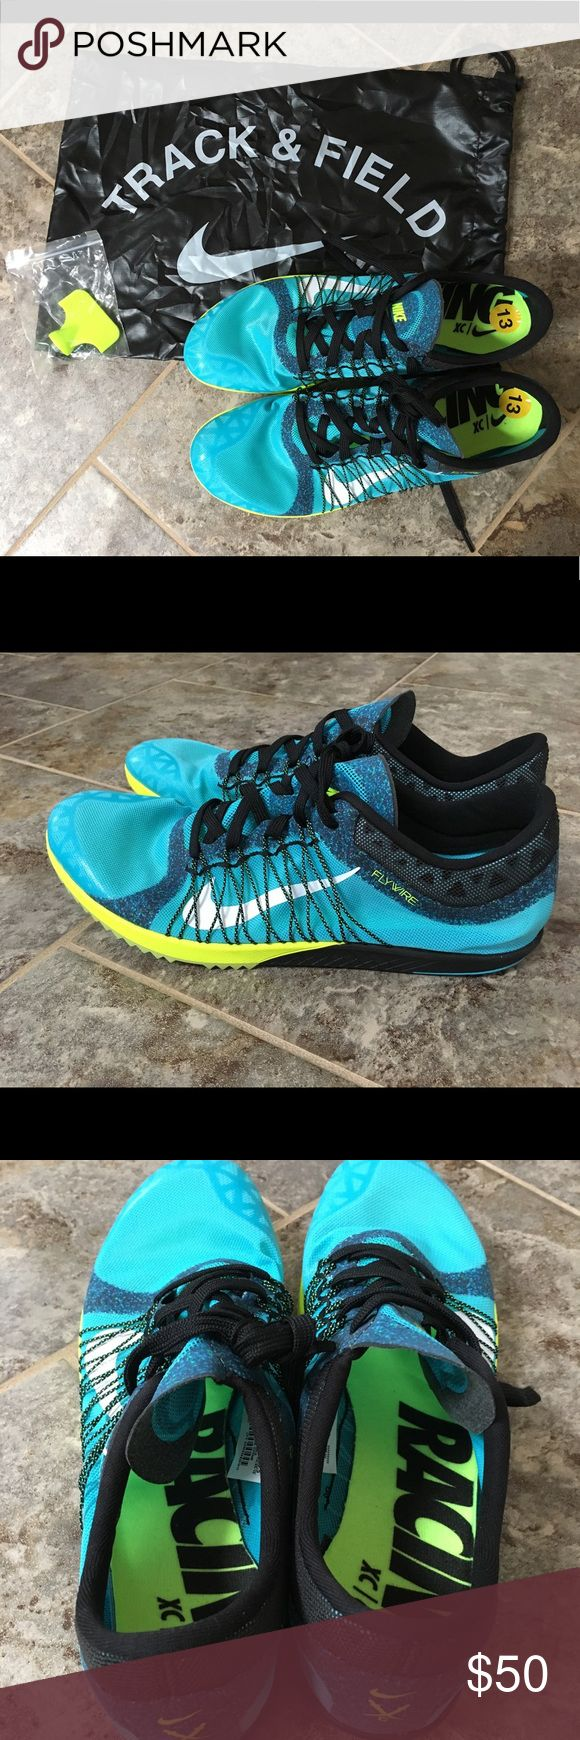 Nike Zoom Ja Fly 2 Unisex Sprint Shoes size 12.5 Brand new, without box. Size 12.5. Color: Blue/Volt. Comes with Nike bag (there is a rip in the bag pictured) and spikes/tool. Please make official OFFERS and BUNDLES! Nike Shoes Athletic Shoes